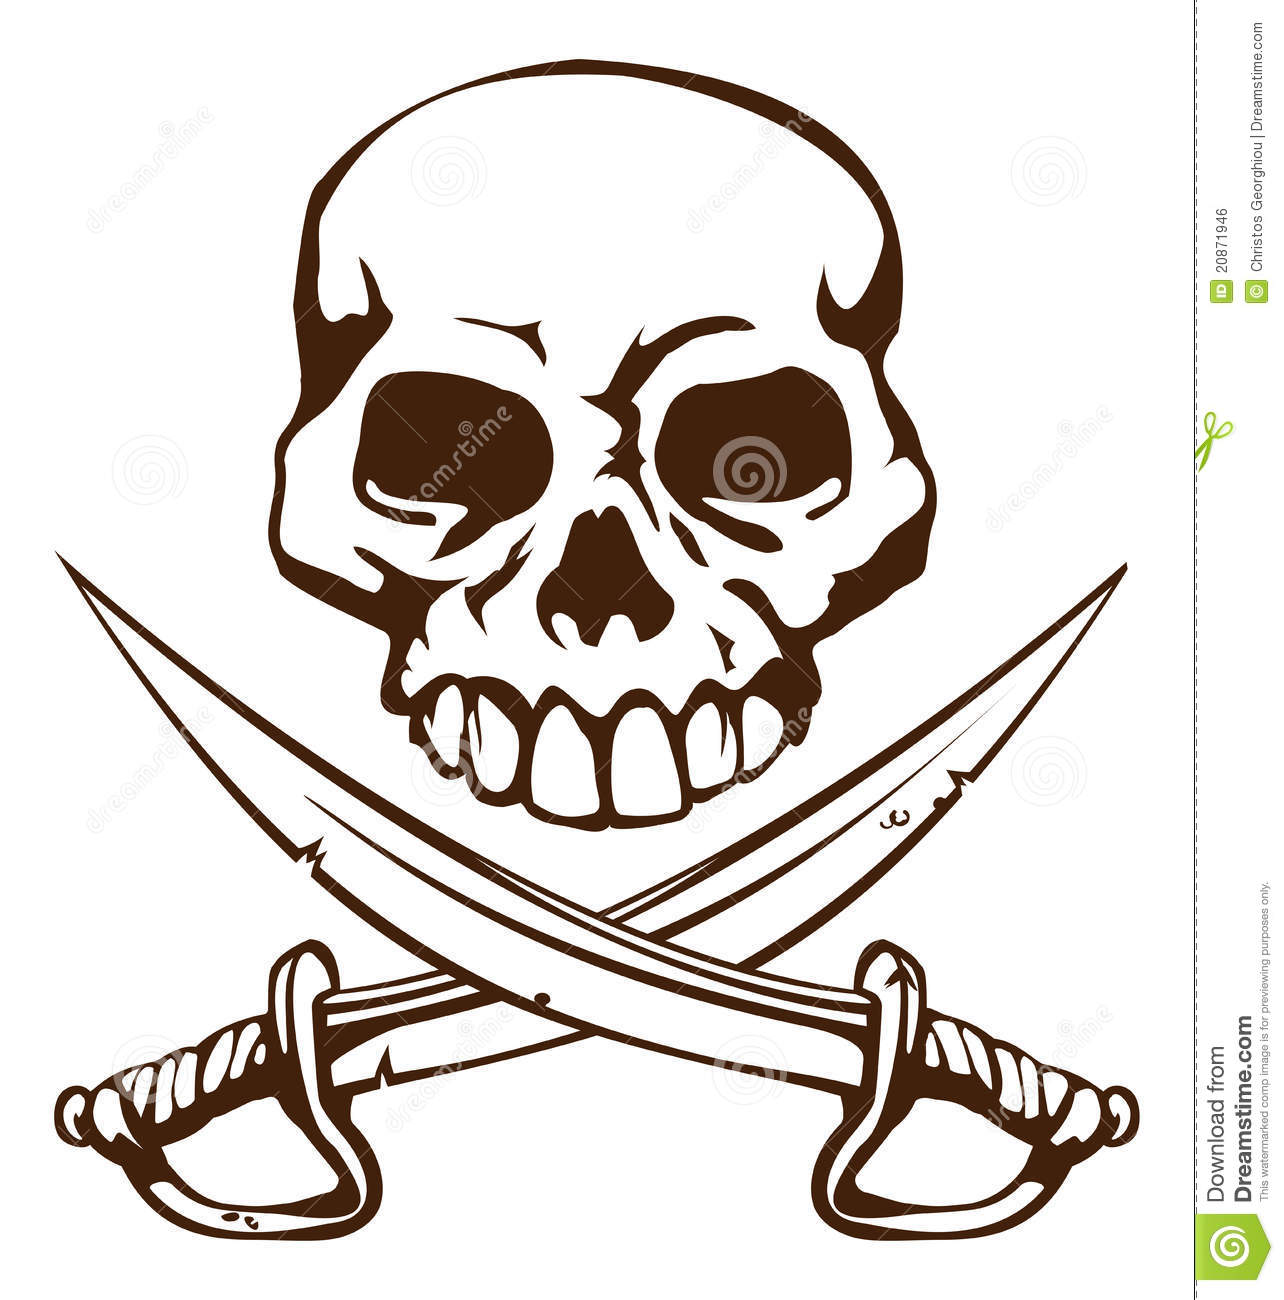 pirate skull and crossed swords symbol royalty free stock image   image 20871946